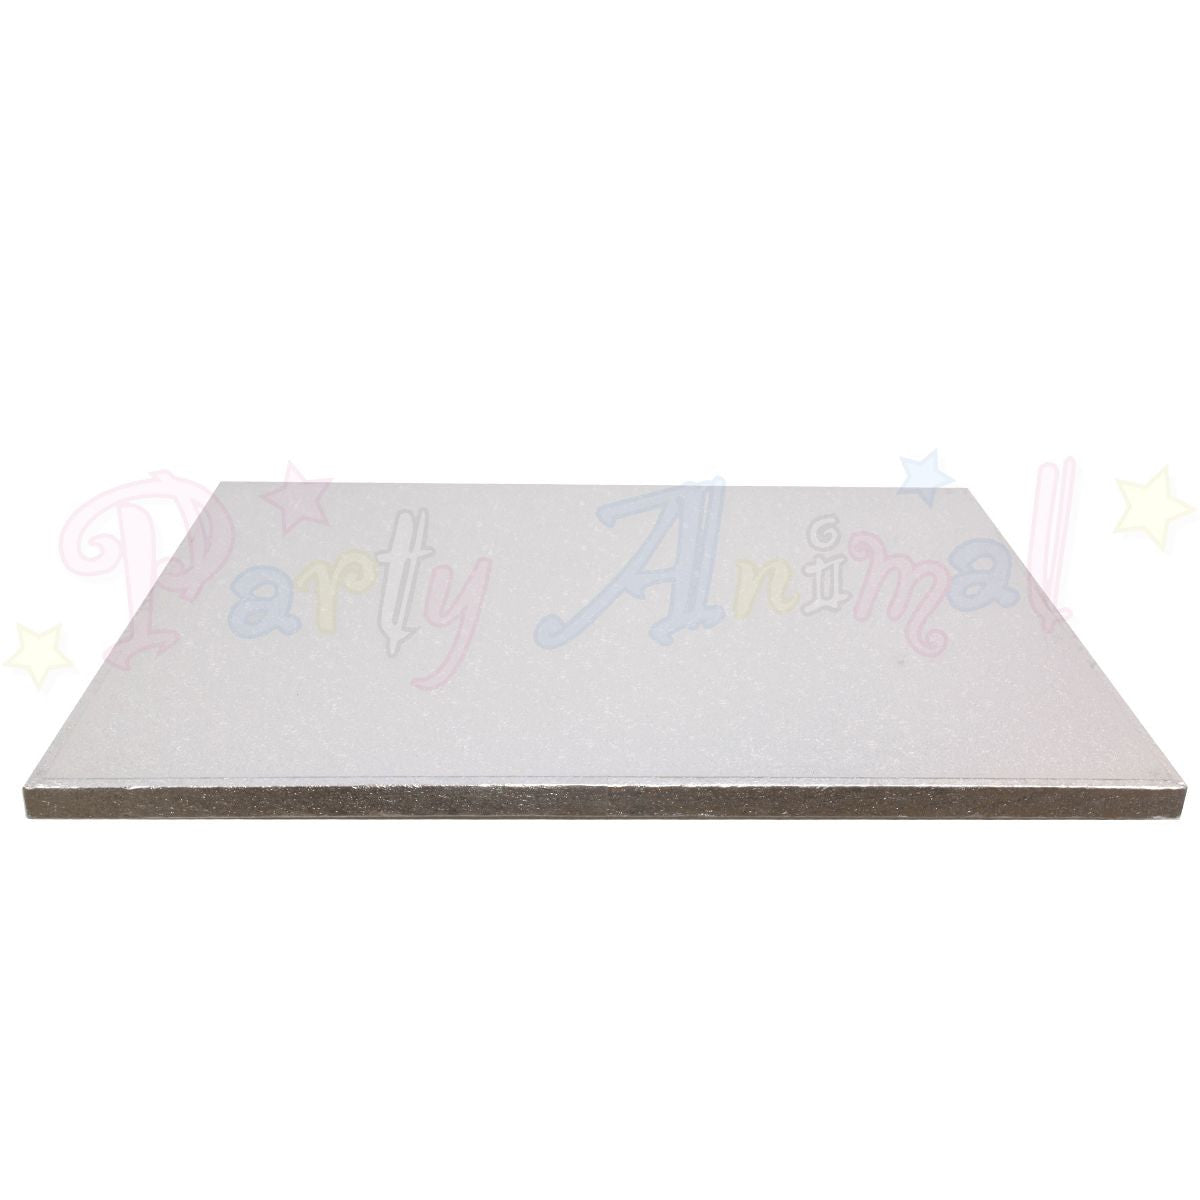 "OBLONG Drum Cake Boards - 14x12"" Silver Foil"